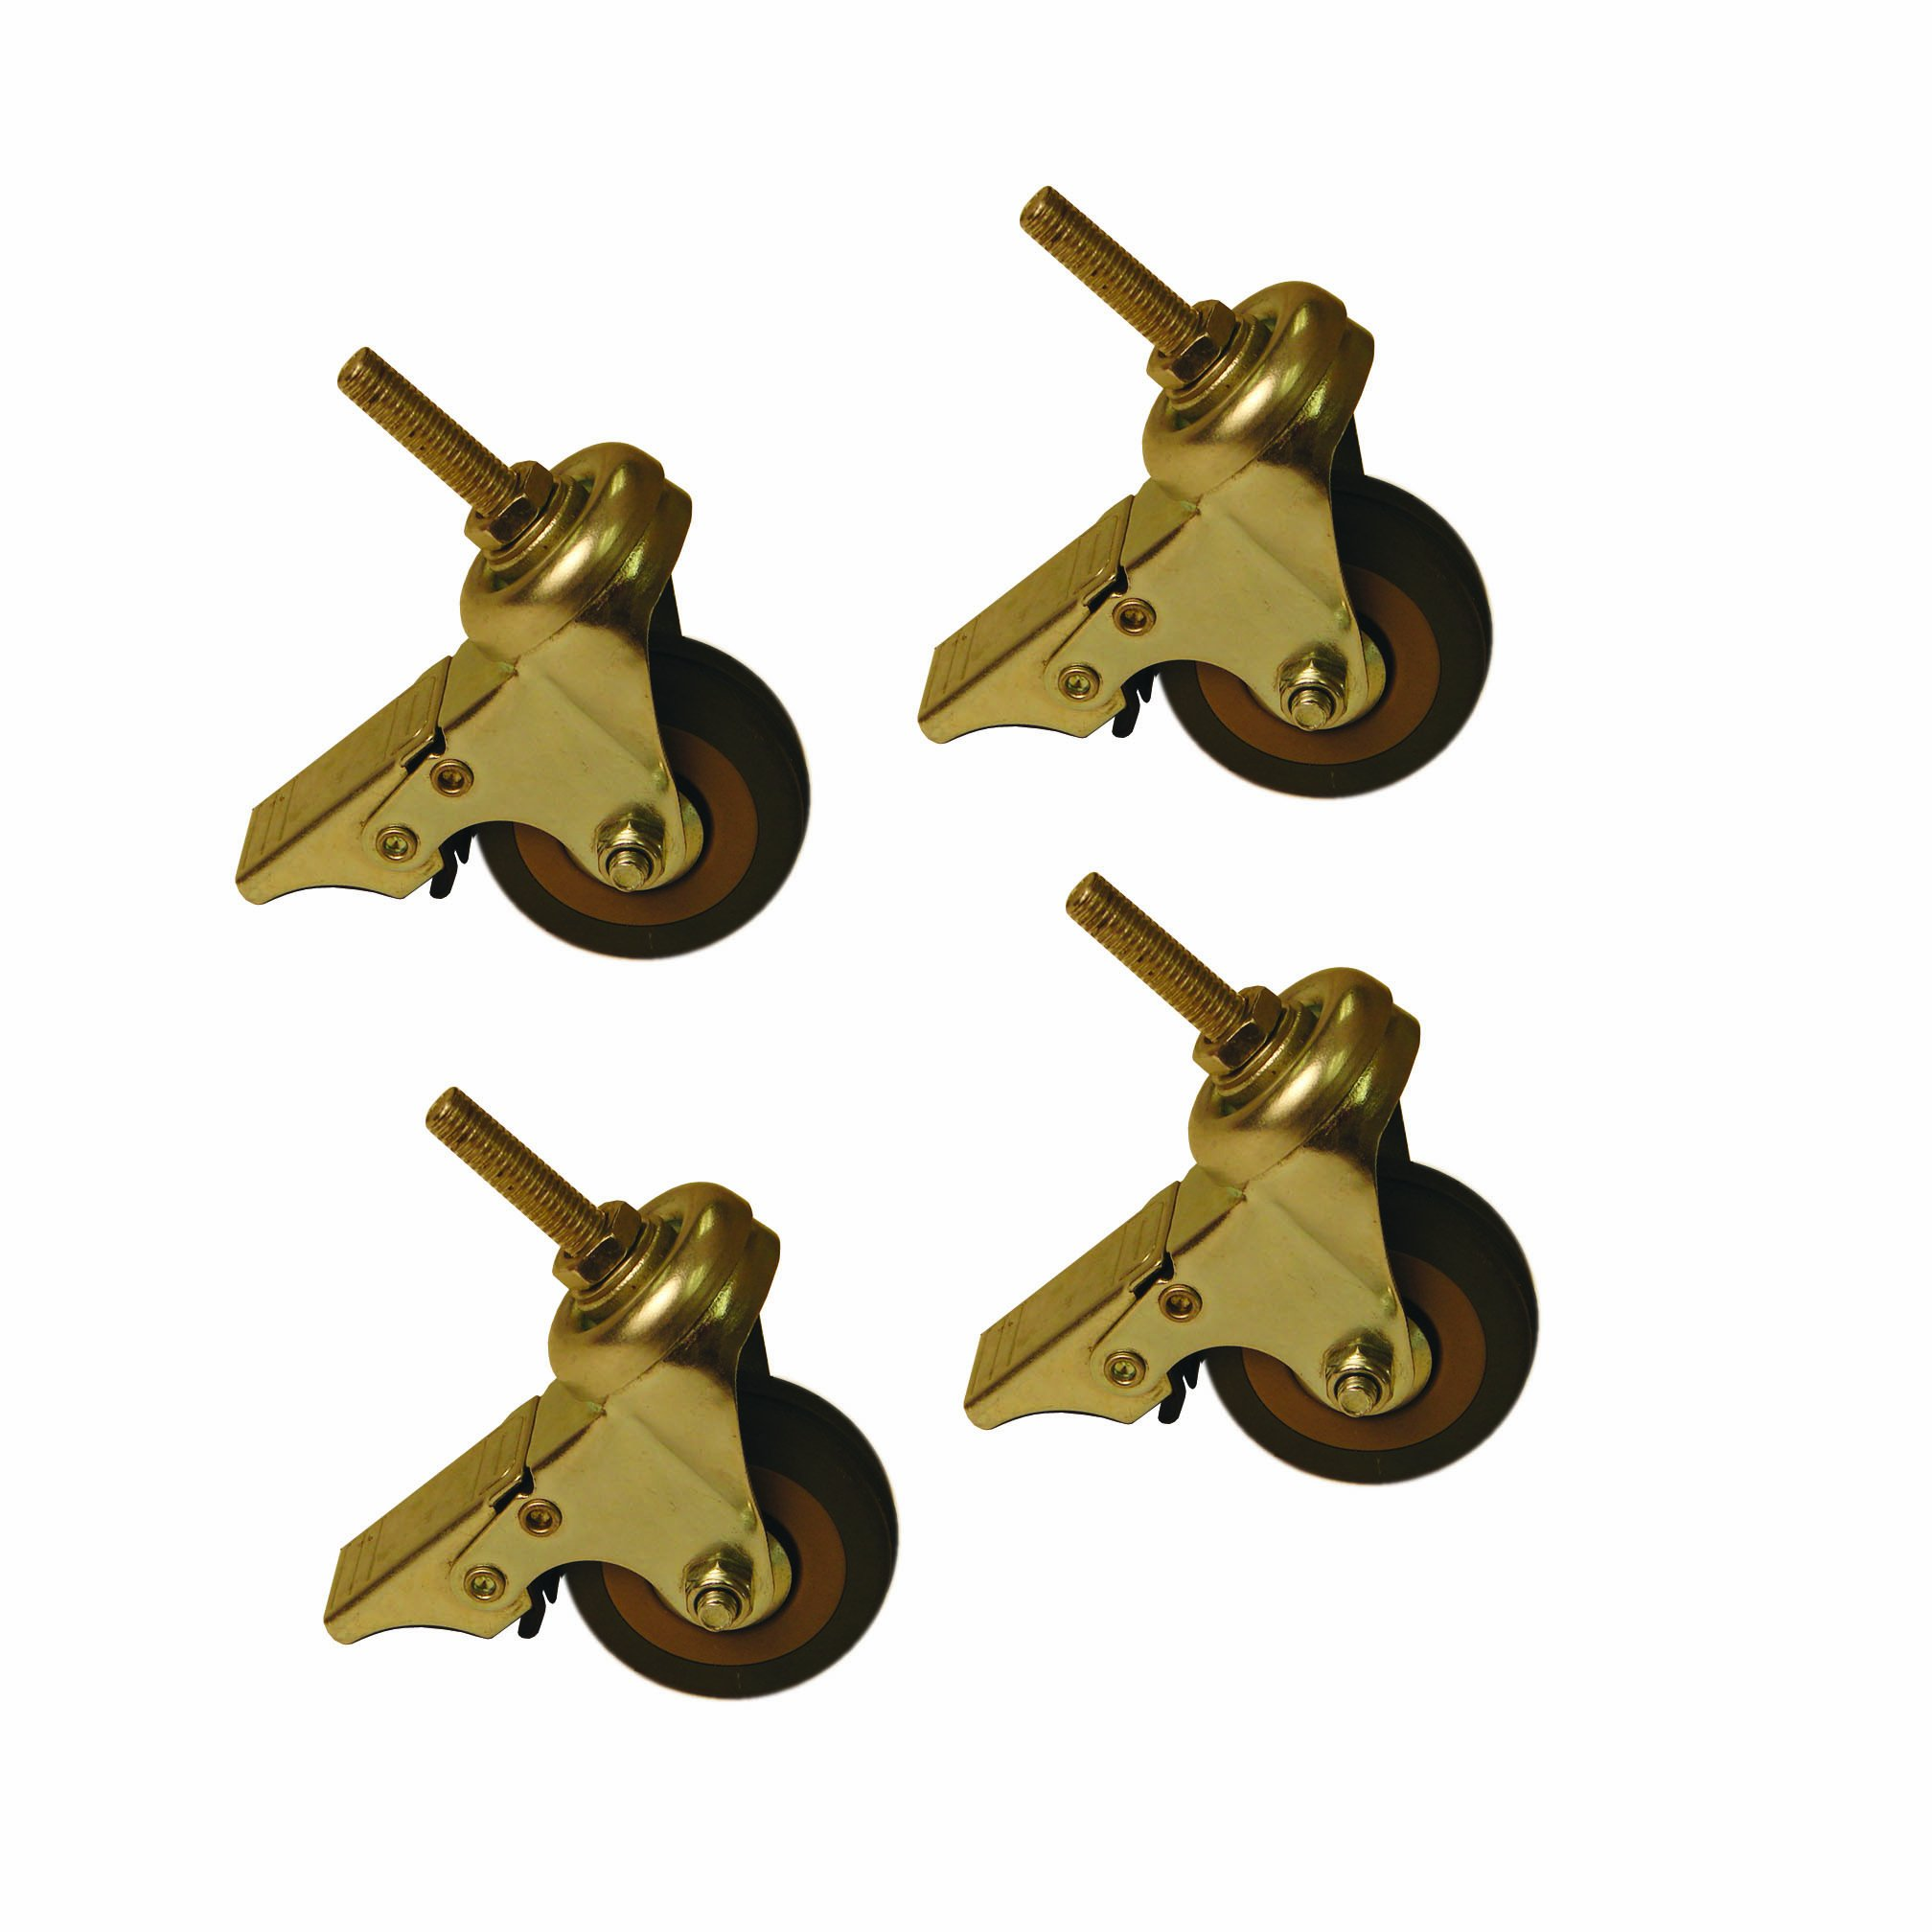 Malone Auto Racks Free Standing Caster Wheel Kit